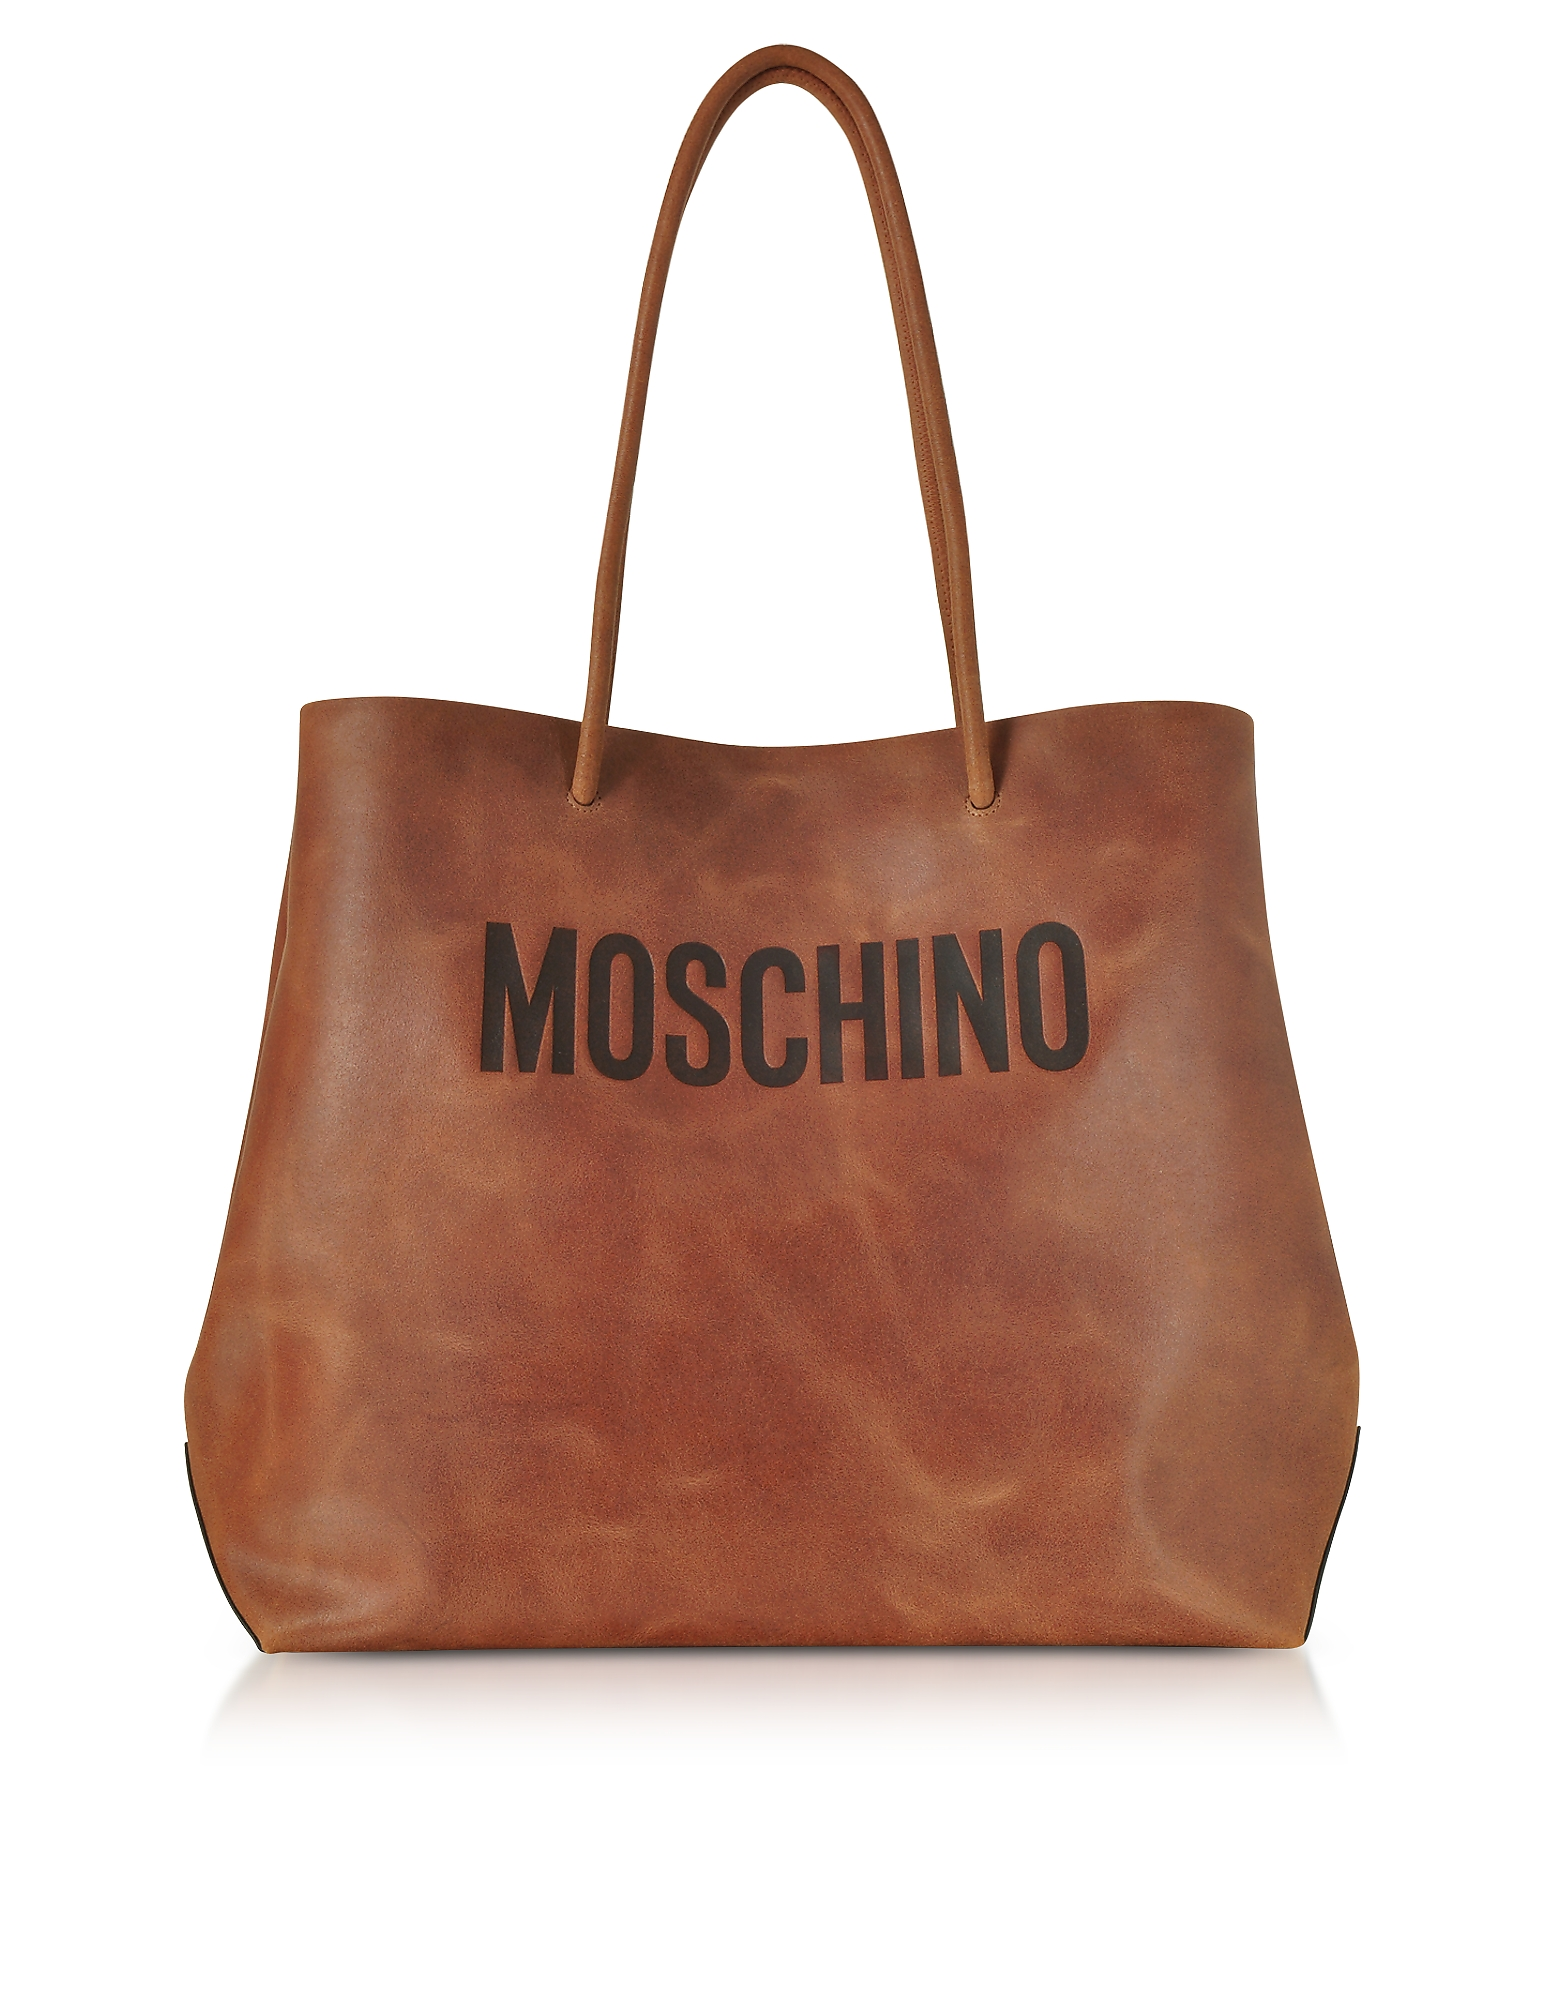 Moschino Handbags, Brown Leather Tote Bag w/Signature Logo